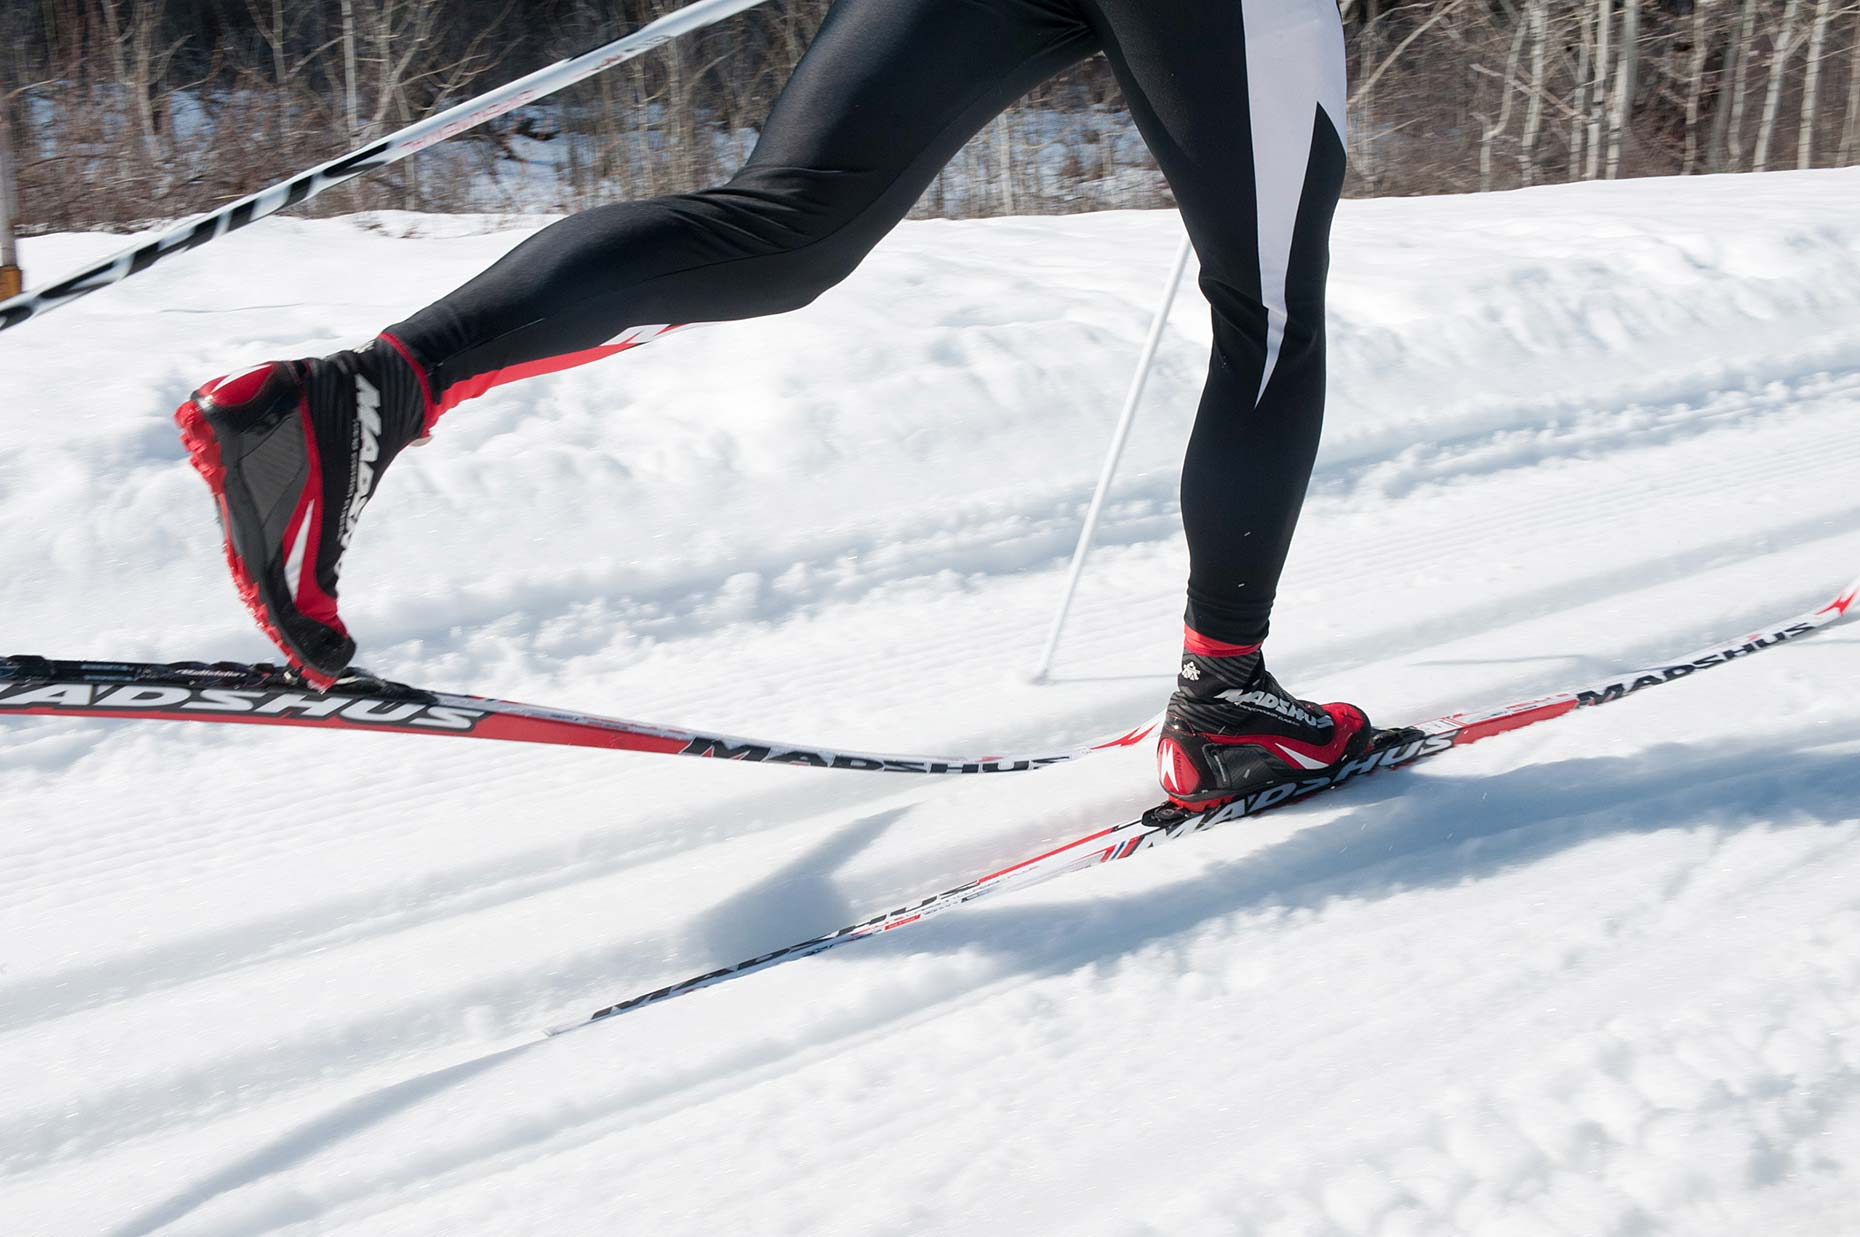 Ian-Coble-Madshus-Nordic-Skis-Crosscountry-4